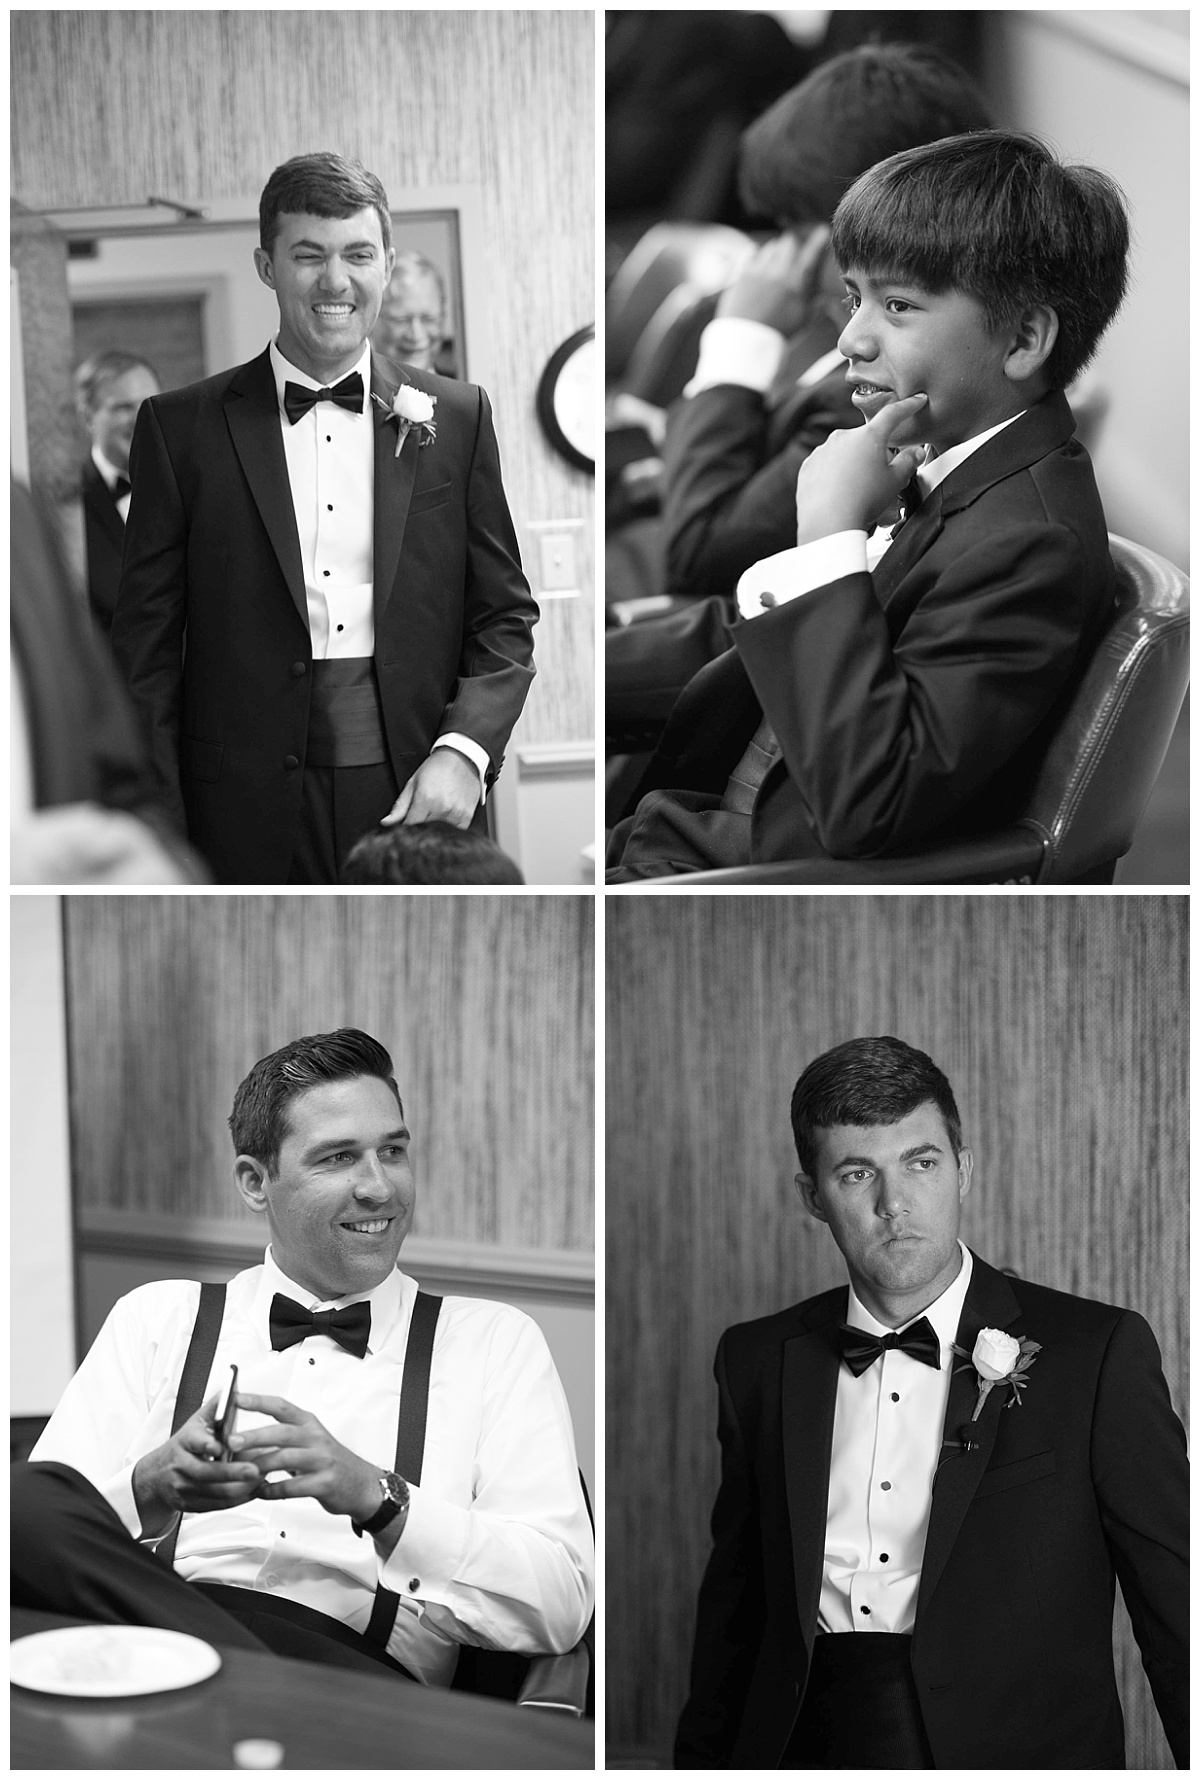 Groomsmen waiting for ceremony in black and white